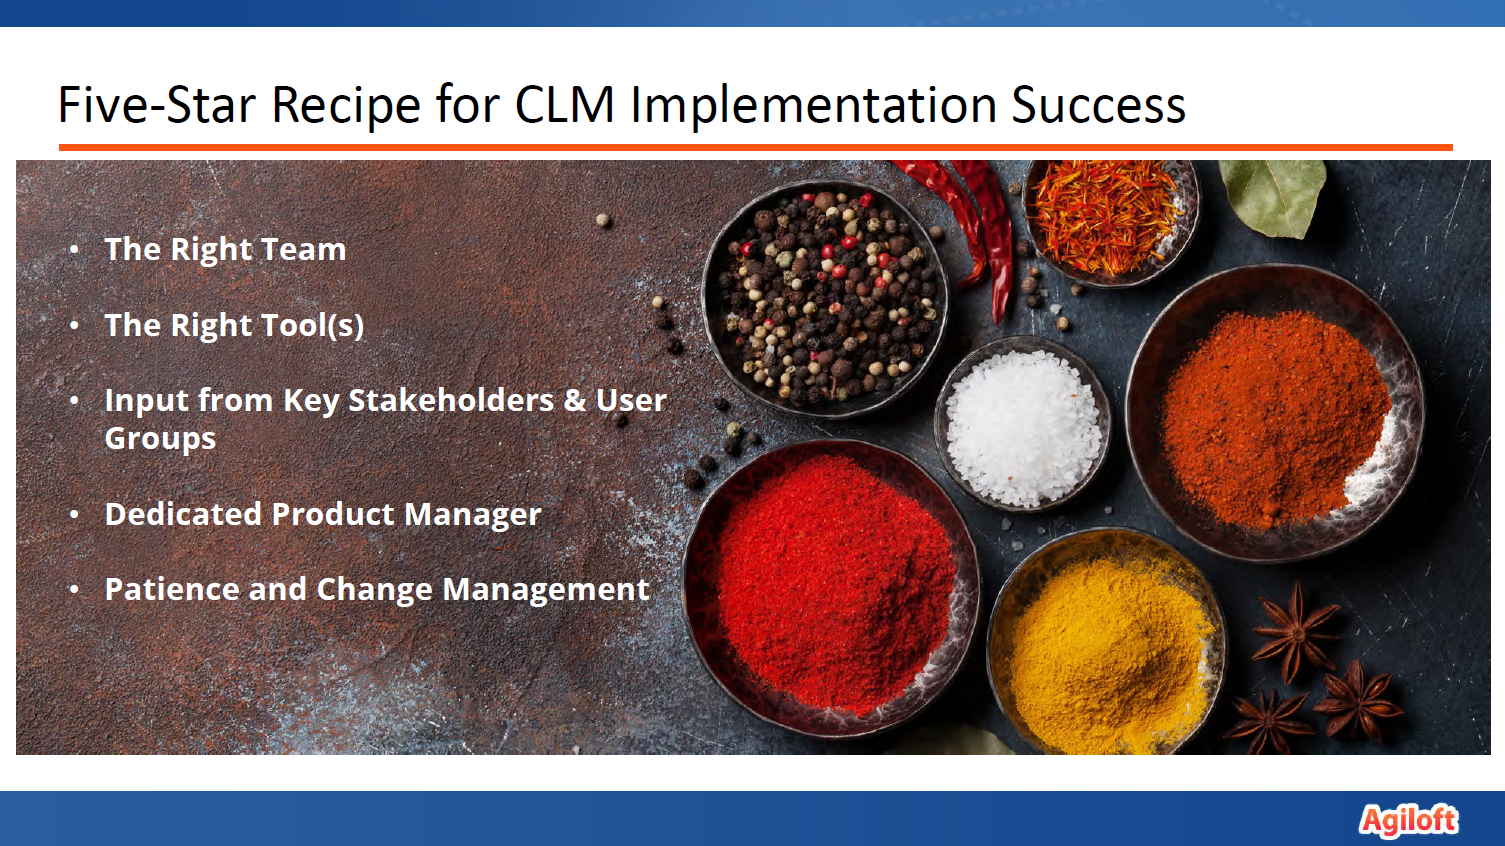 the five-star recipe for CLM implementation success